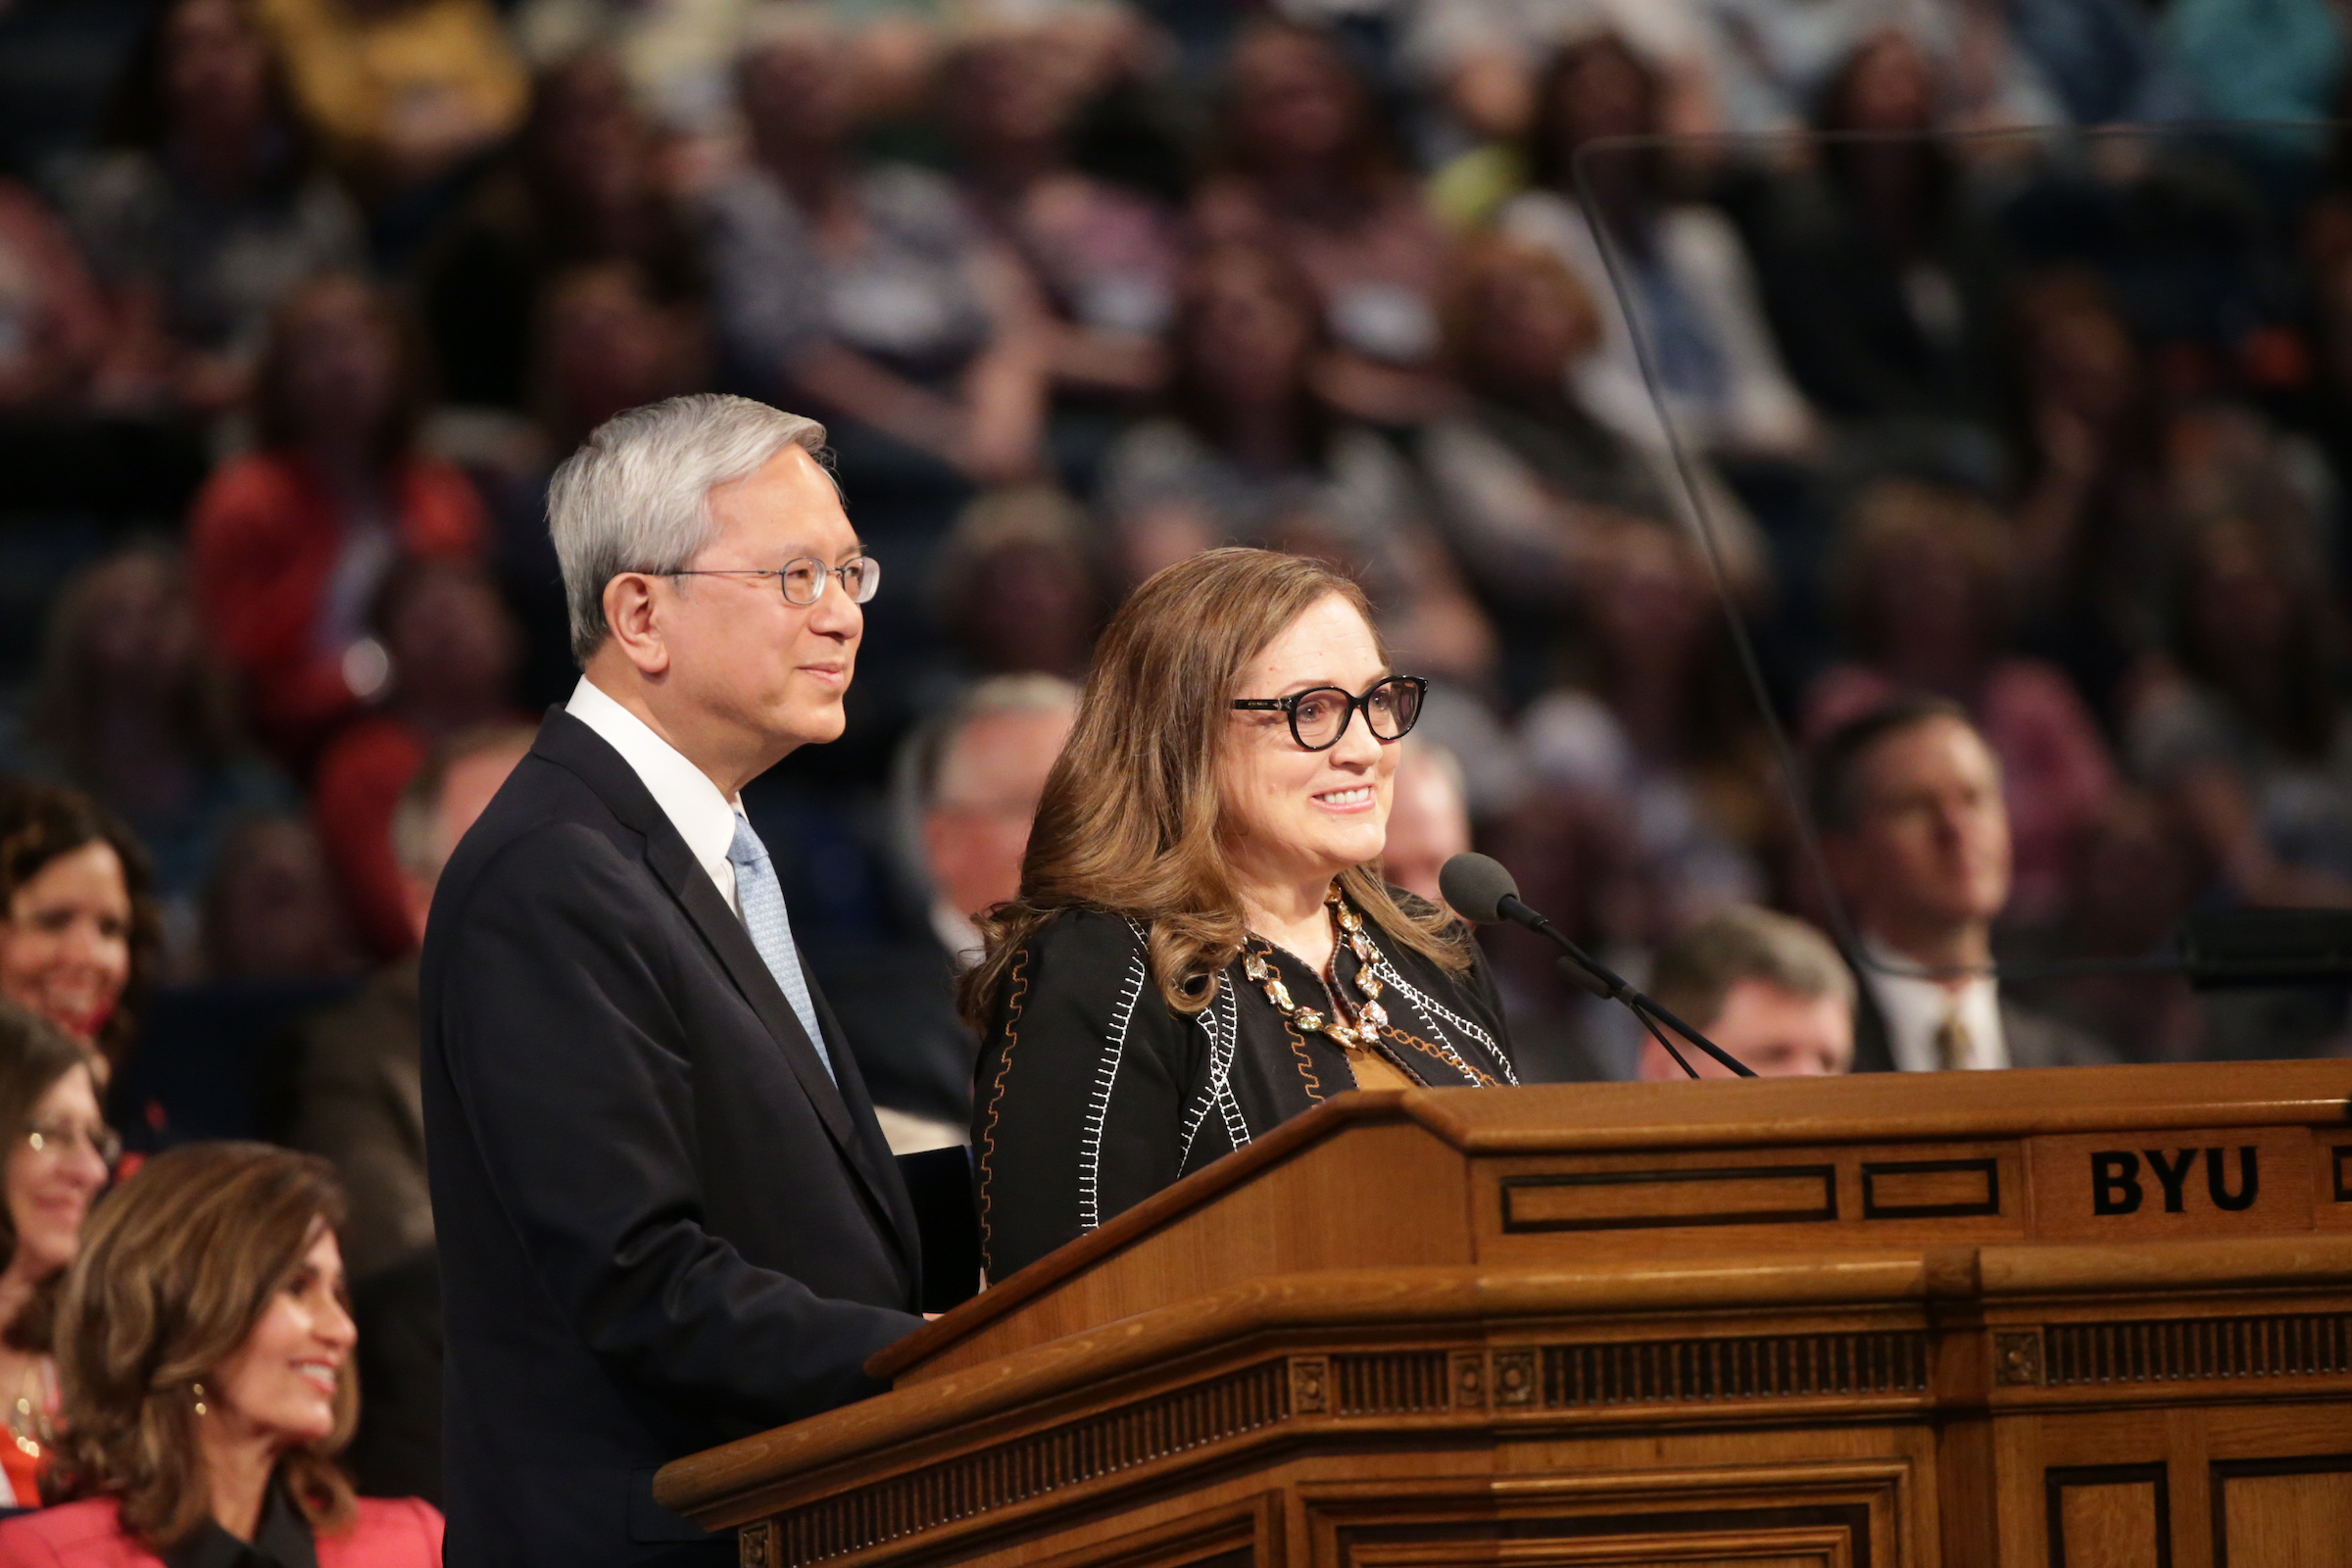 Elder Gerrit W. Gong and his wife, Sister Susan L. Gong, speak at the closing session of BYU's Women's Conference.